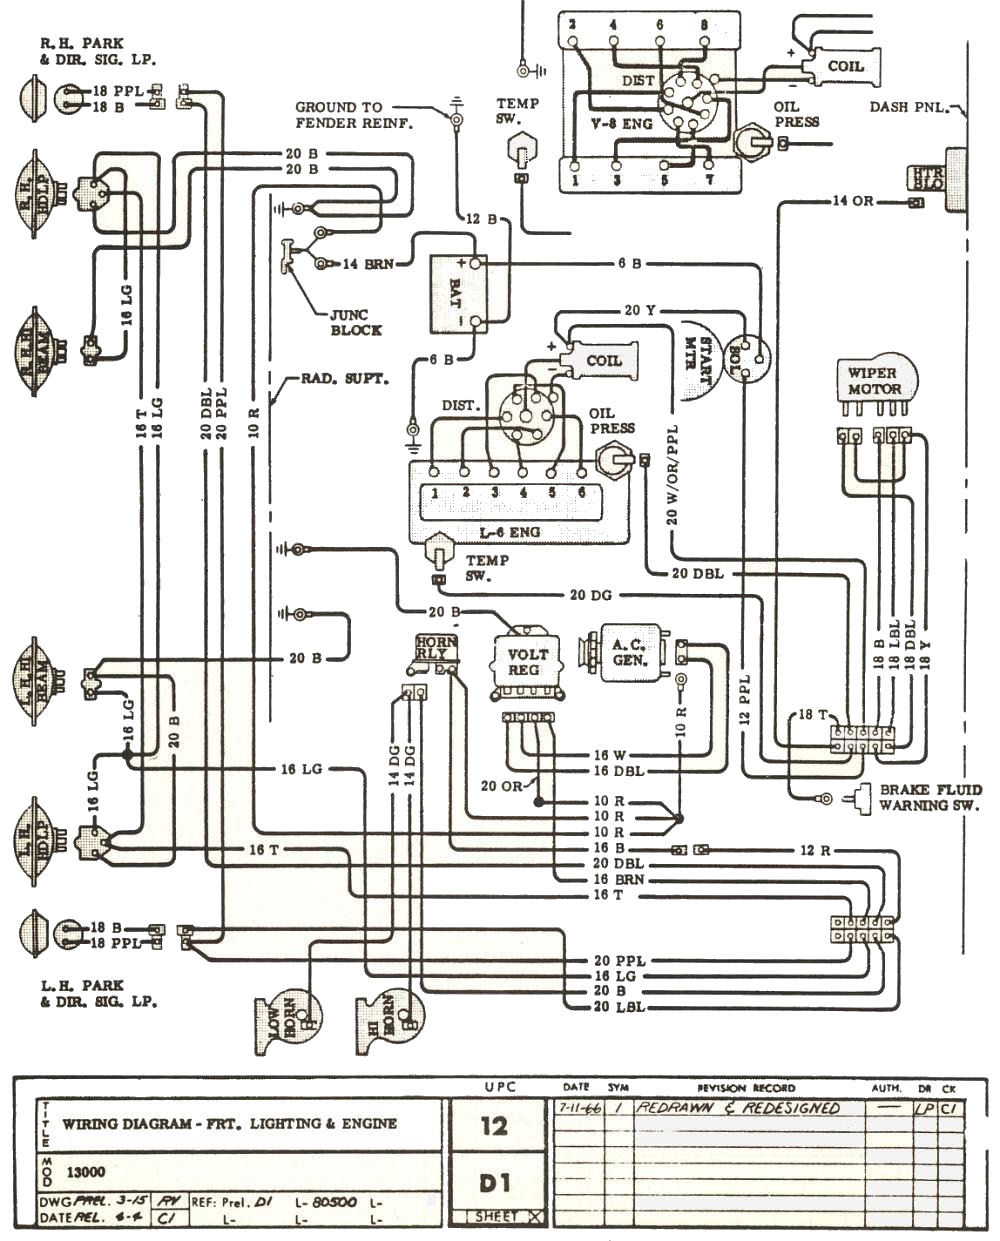 hight resolution of 69 pontiac wiring diagram wiring diagram repair guides1967 gto wiring harness diagram wiring diagram inside 69